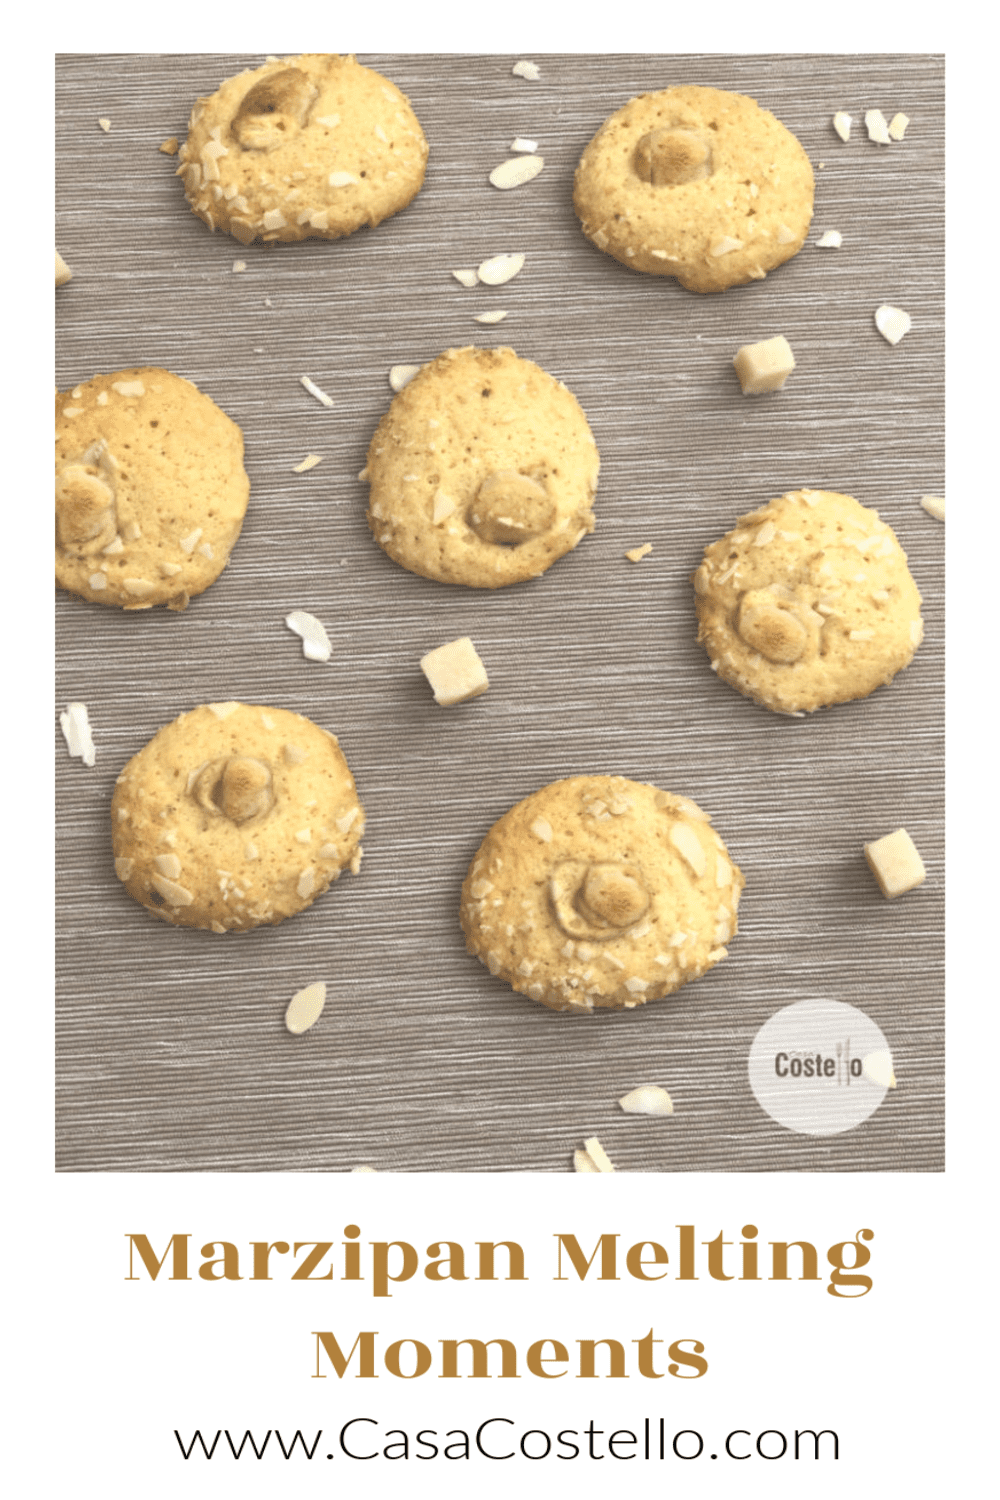 Marzipan Melting Moments cookies #BakeoftheWeek #cookies #marzipan #almond #biscuits